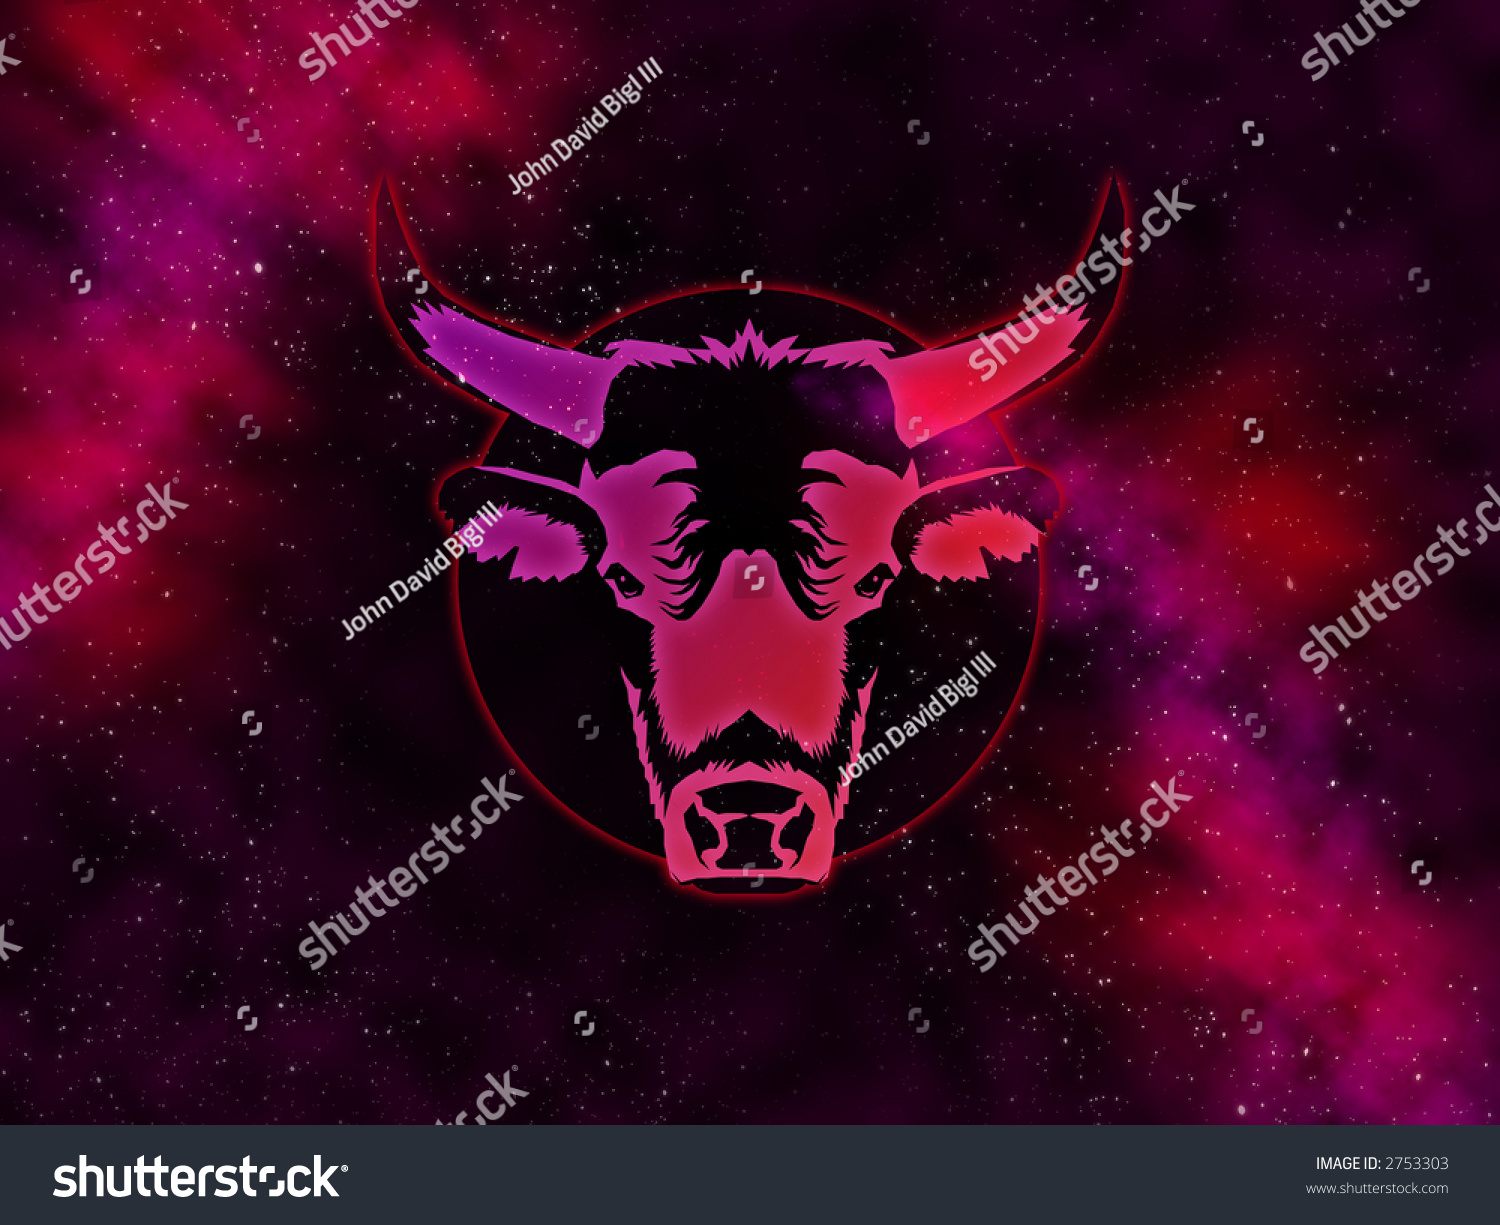 taurus nebula backgrounds - photo #29